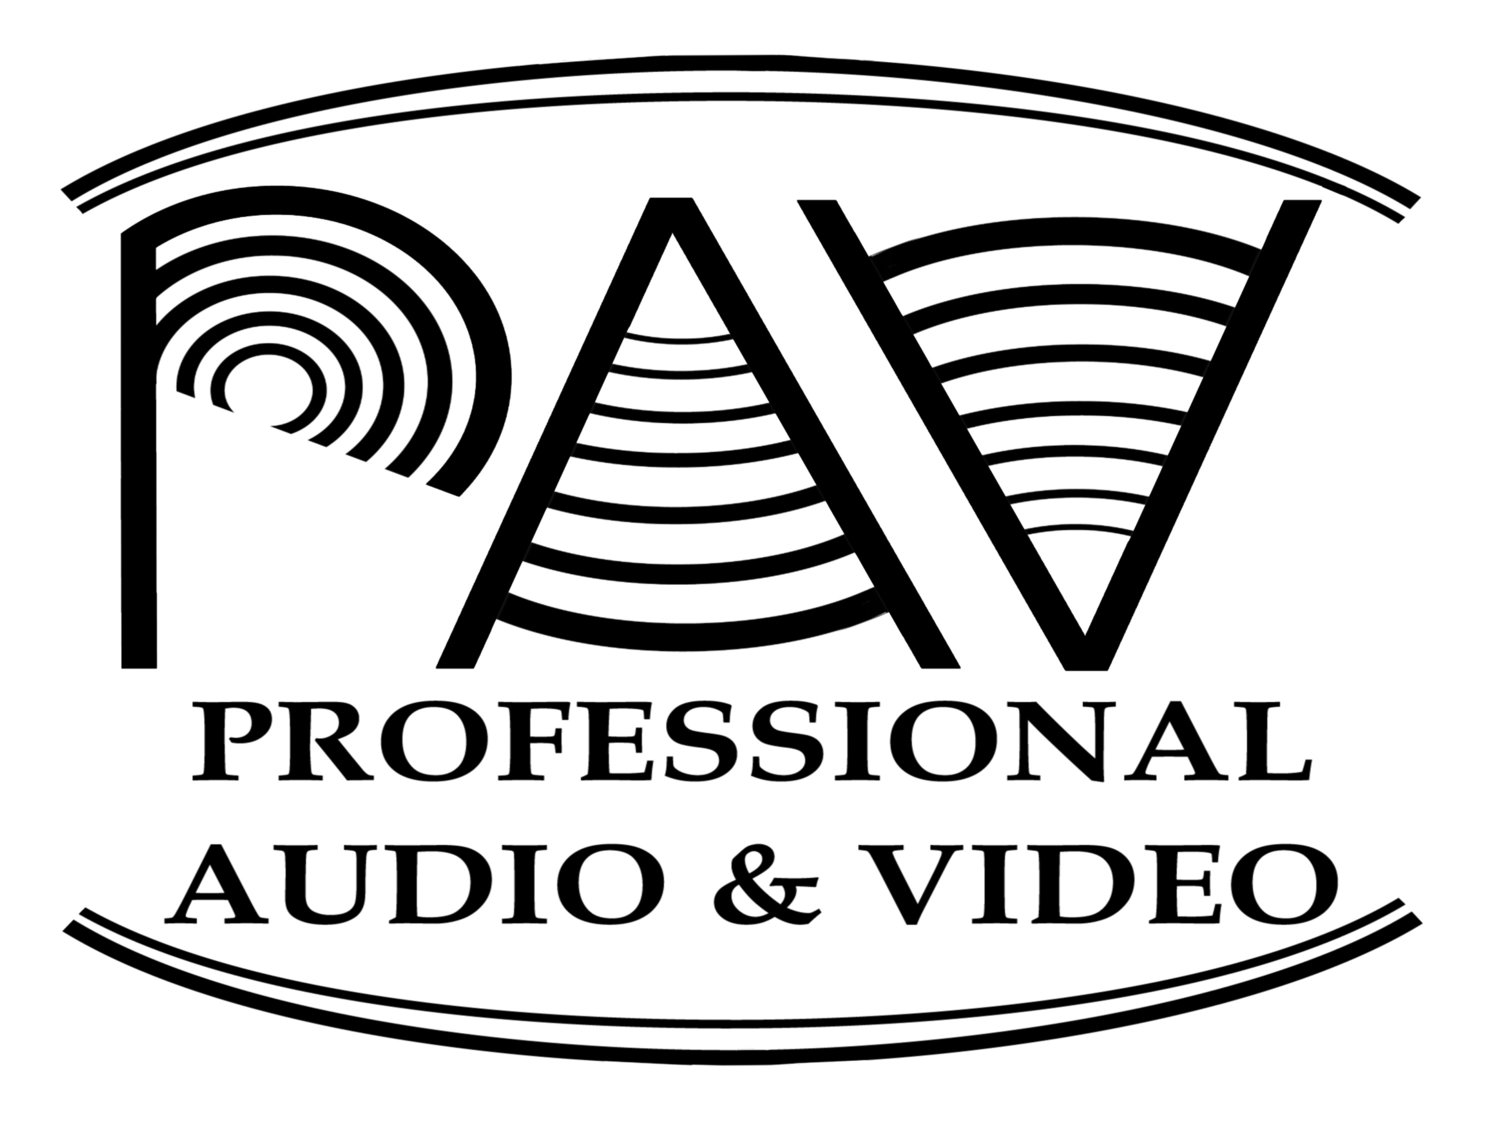 PROFESSIONAL AUDIO VIDEO